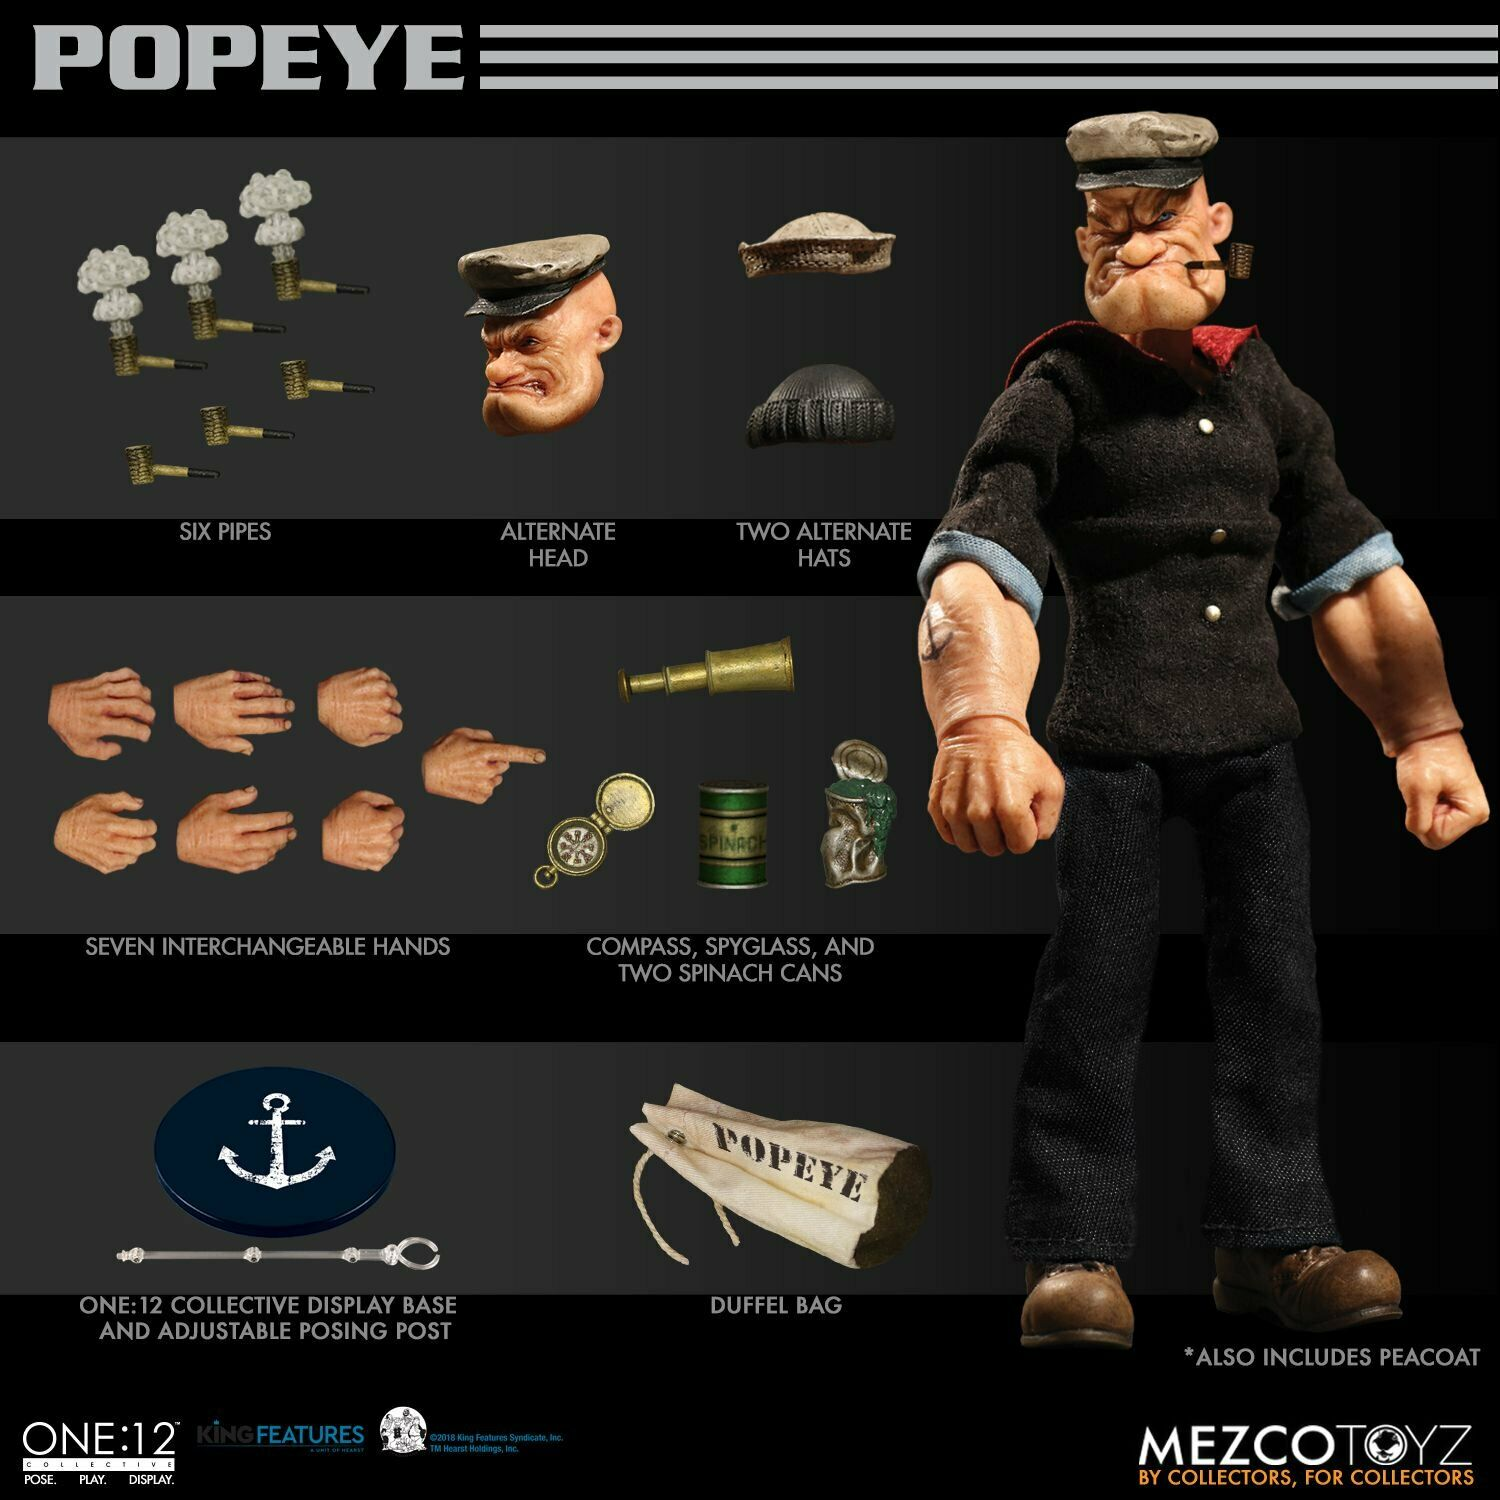 Mezco Toyz 76470 1 12 The One collective Pupai POPEYE figure Toys 6